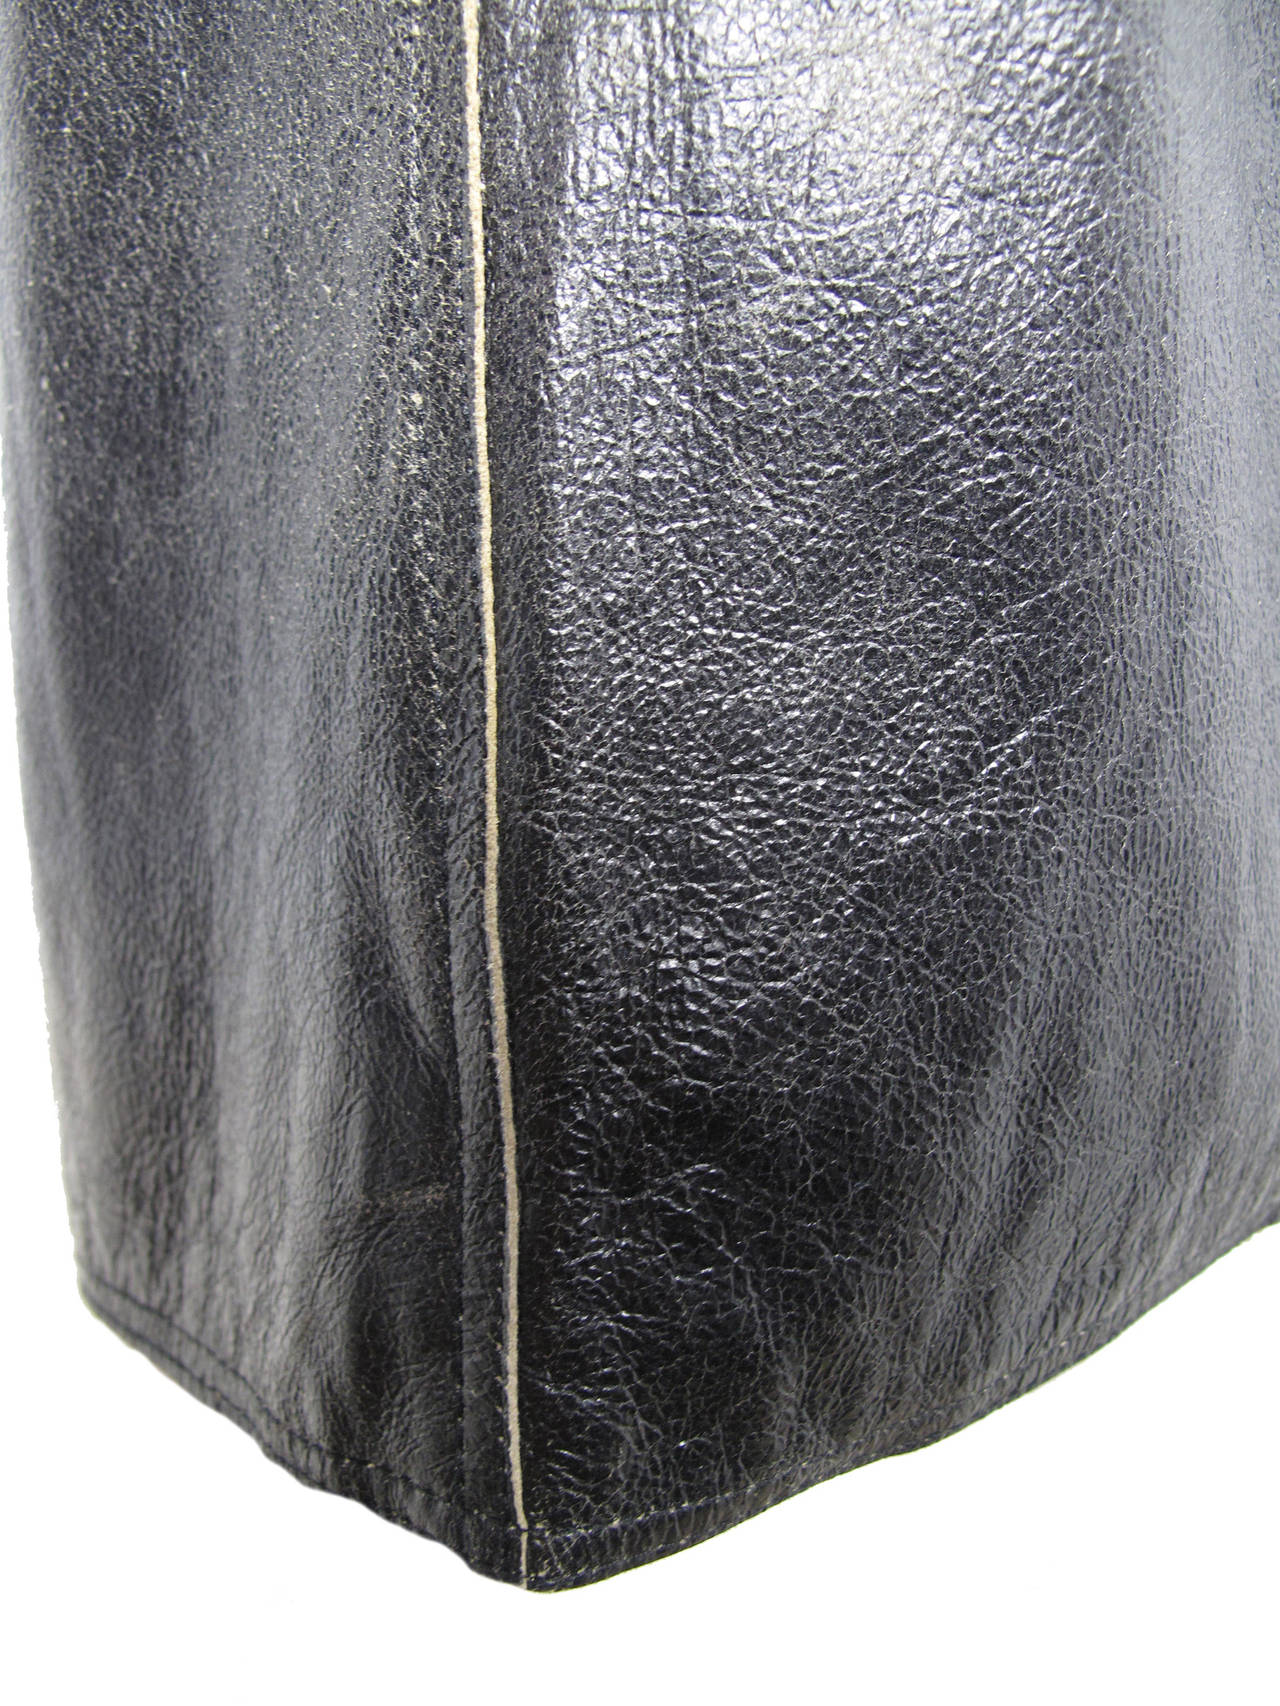 Jean Paul Gaultier Distressed Leather Skirt 2